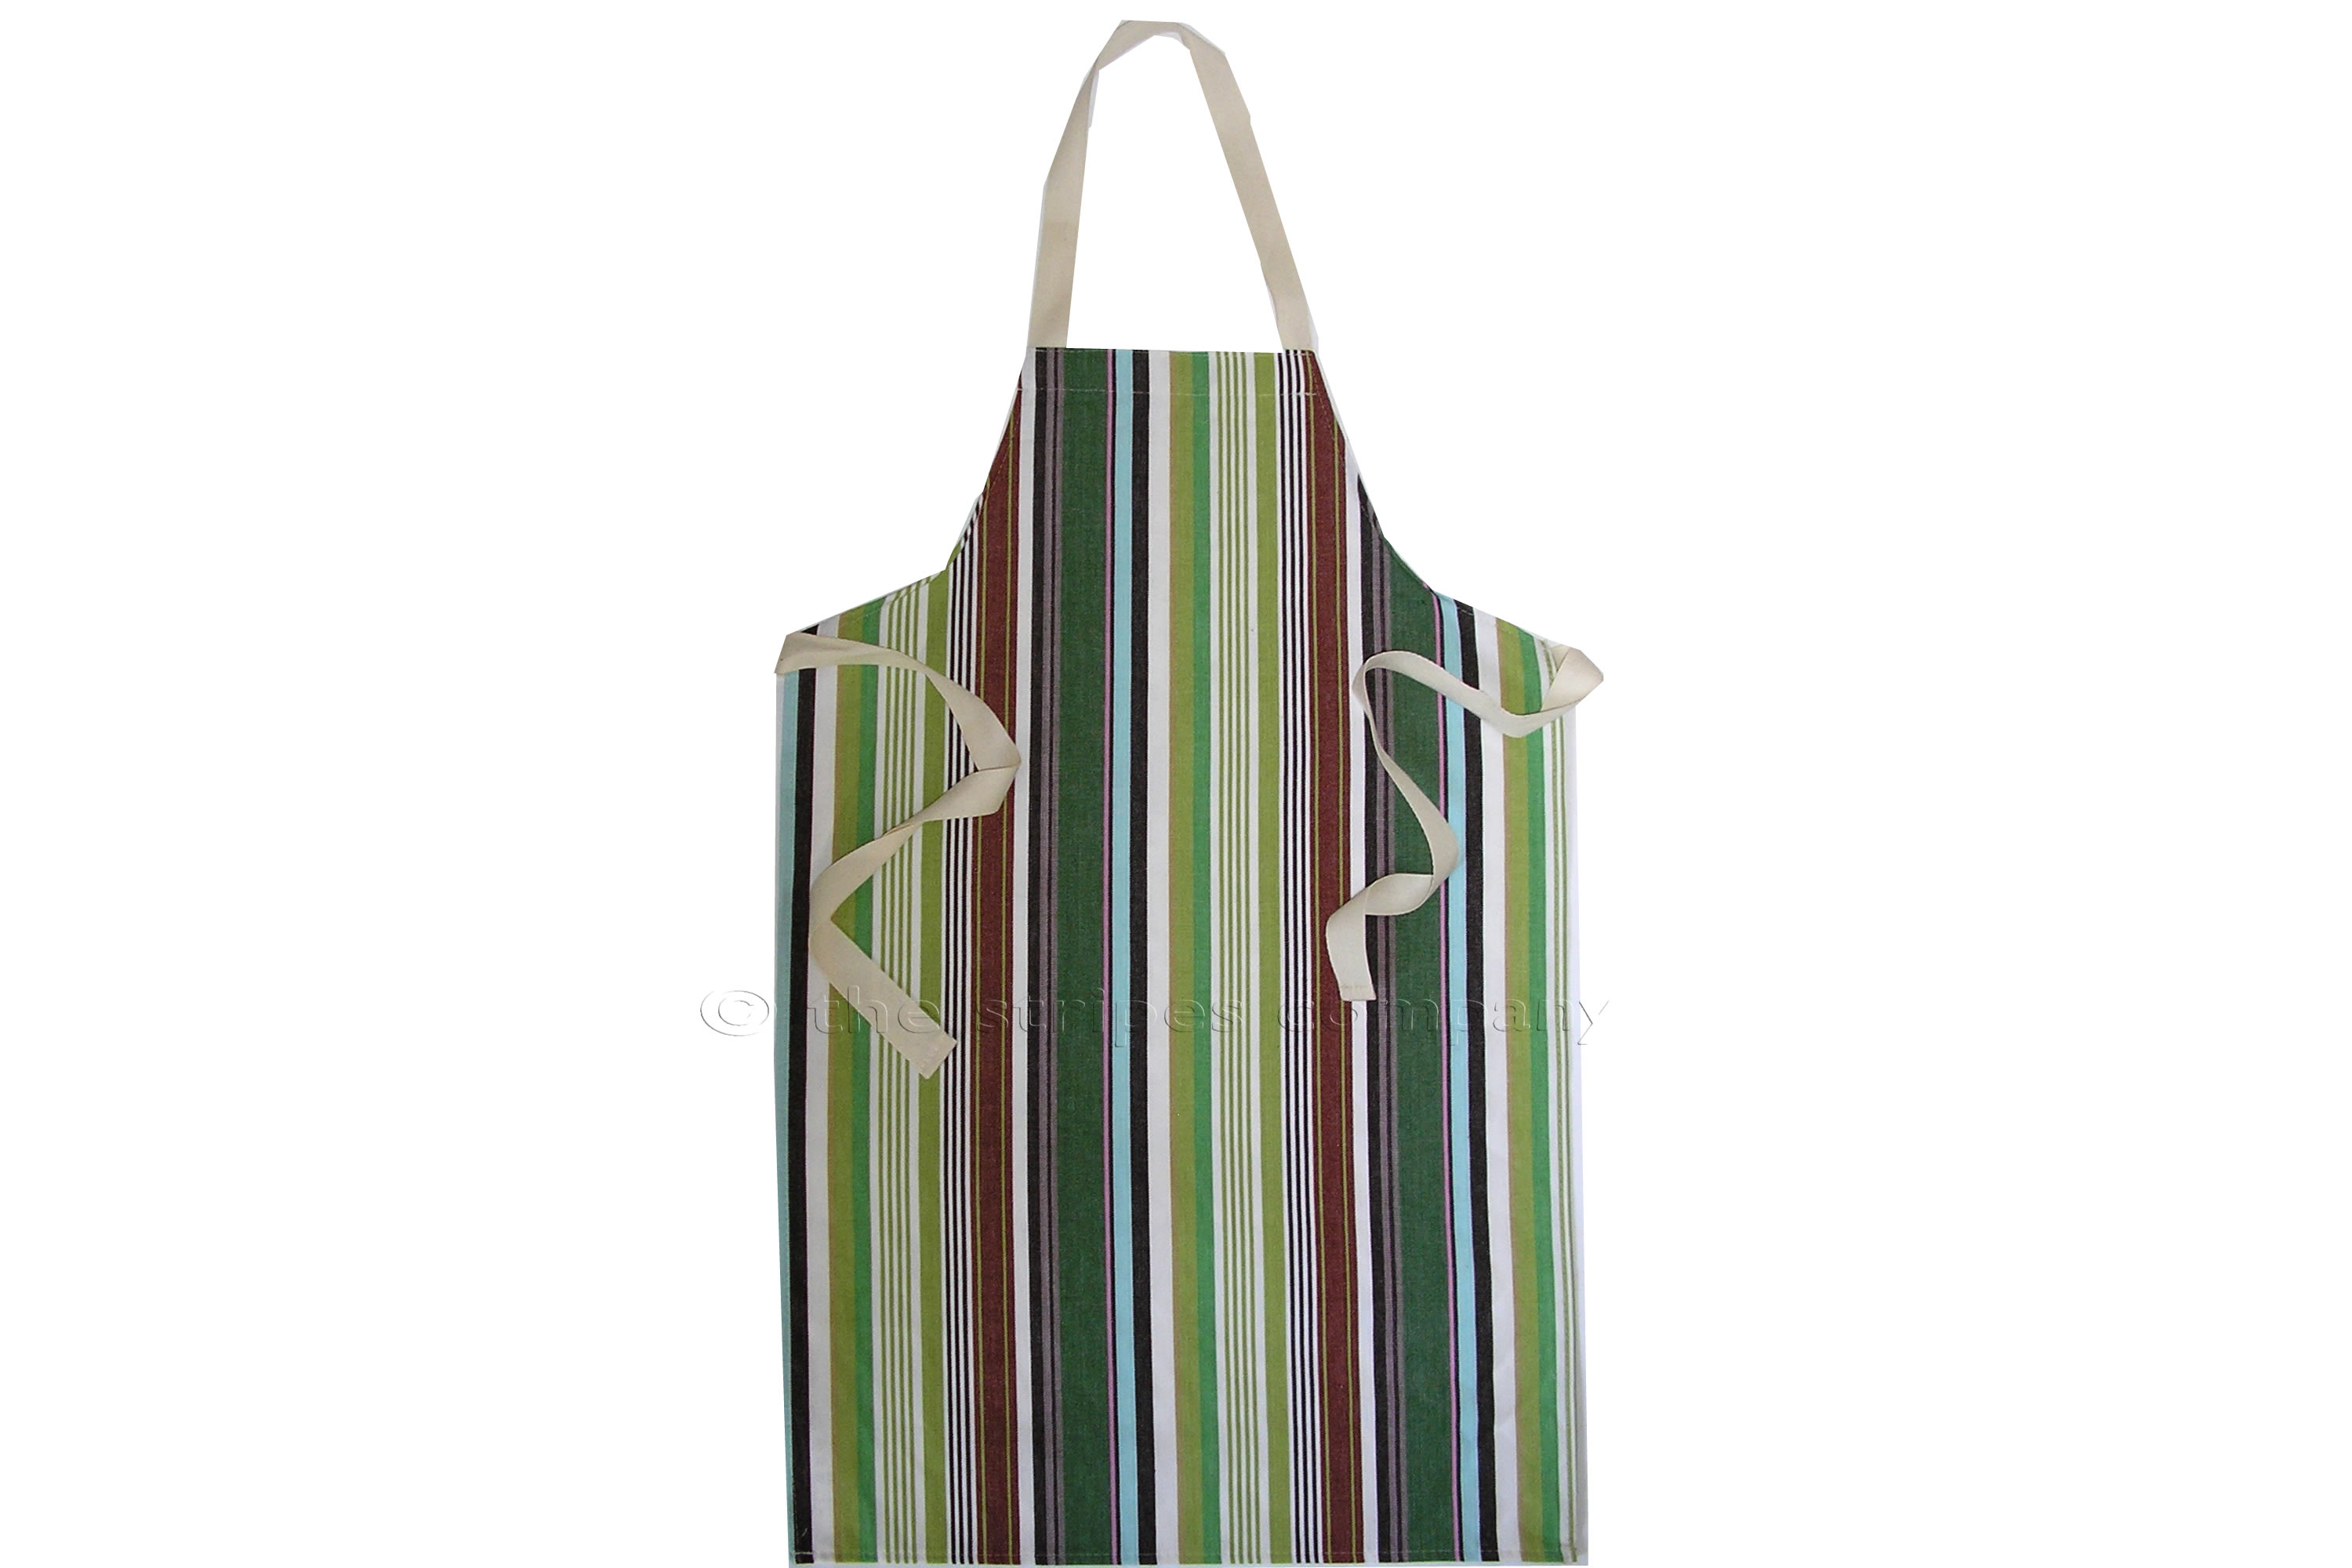 Green Striped Kids Aprons | Aprons for Children  Stripes